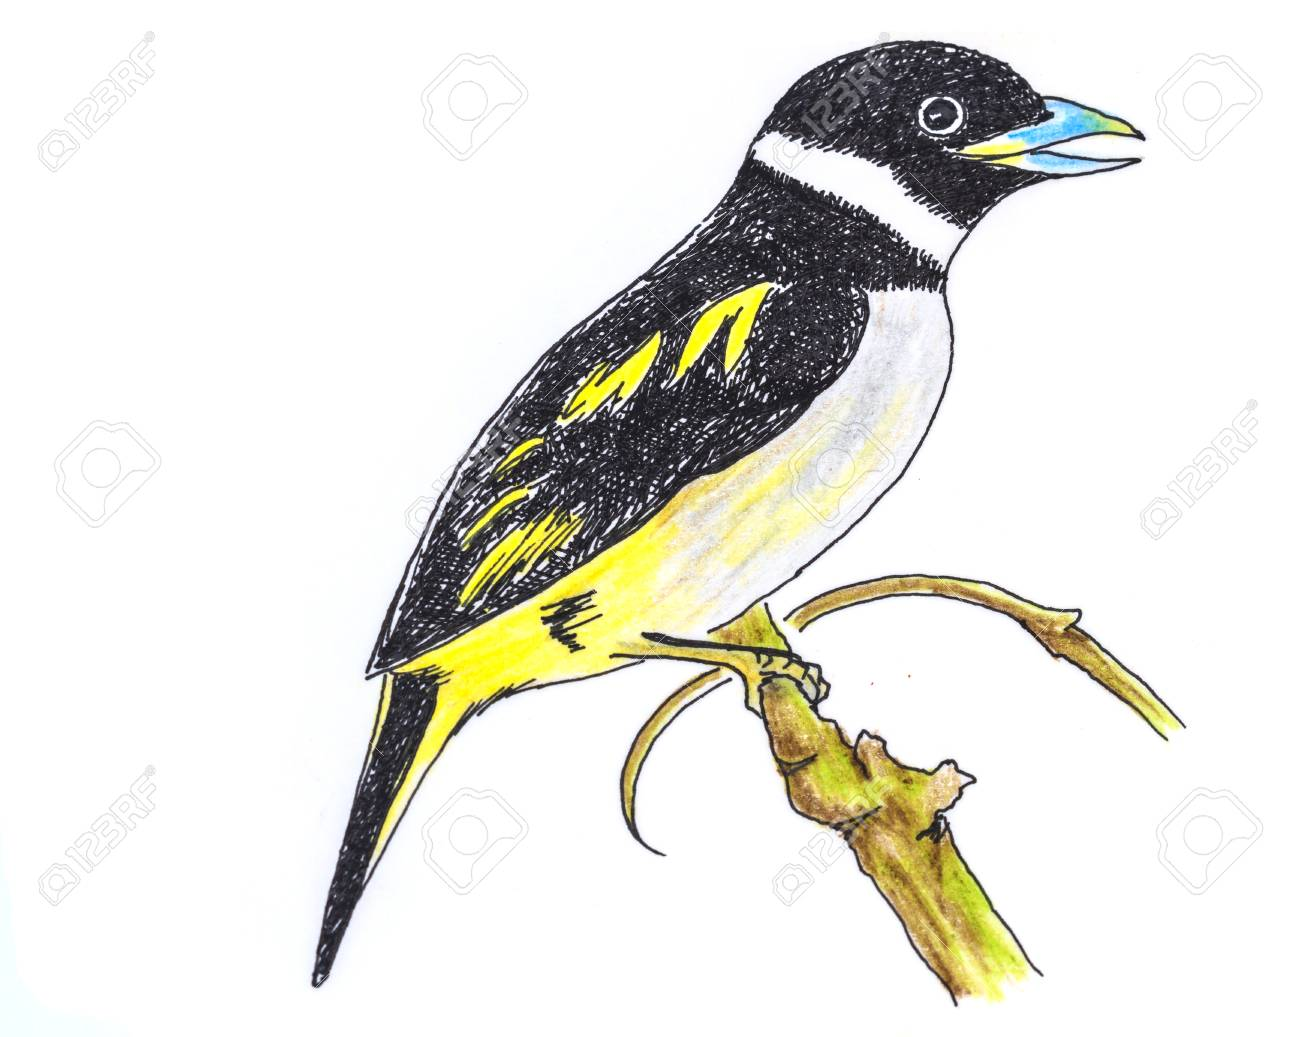 1300x1037 The Original Drawing Of Birds On White Paper, Black And Yellow